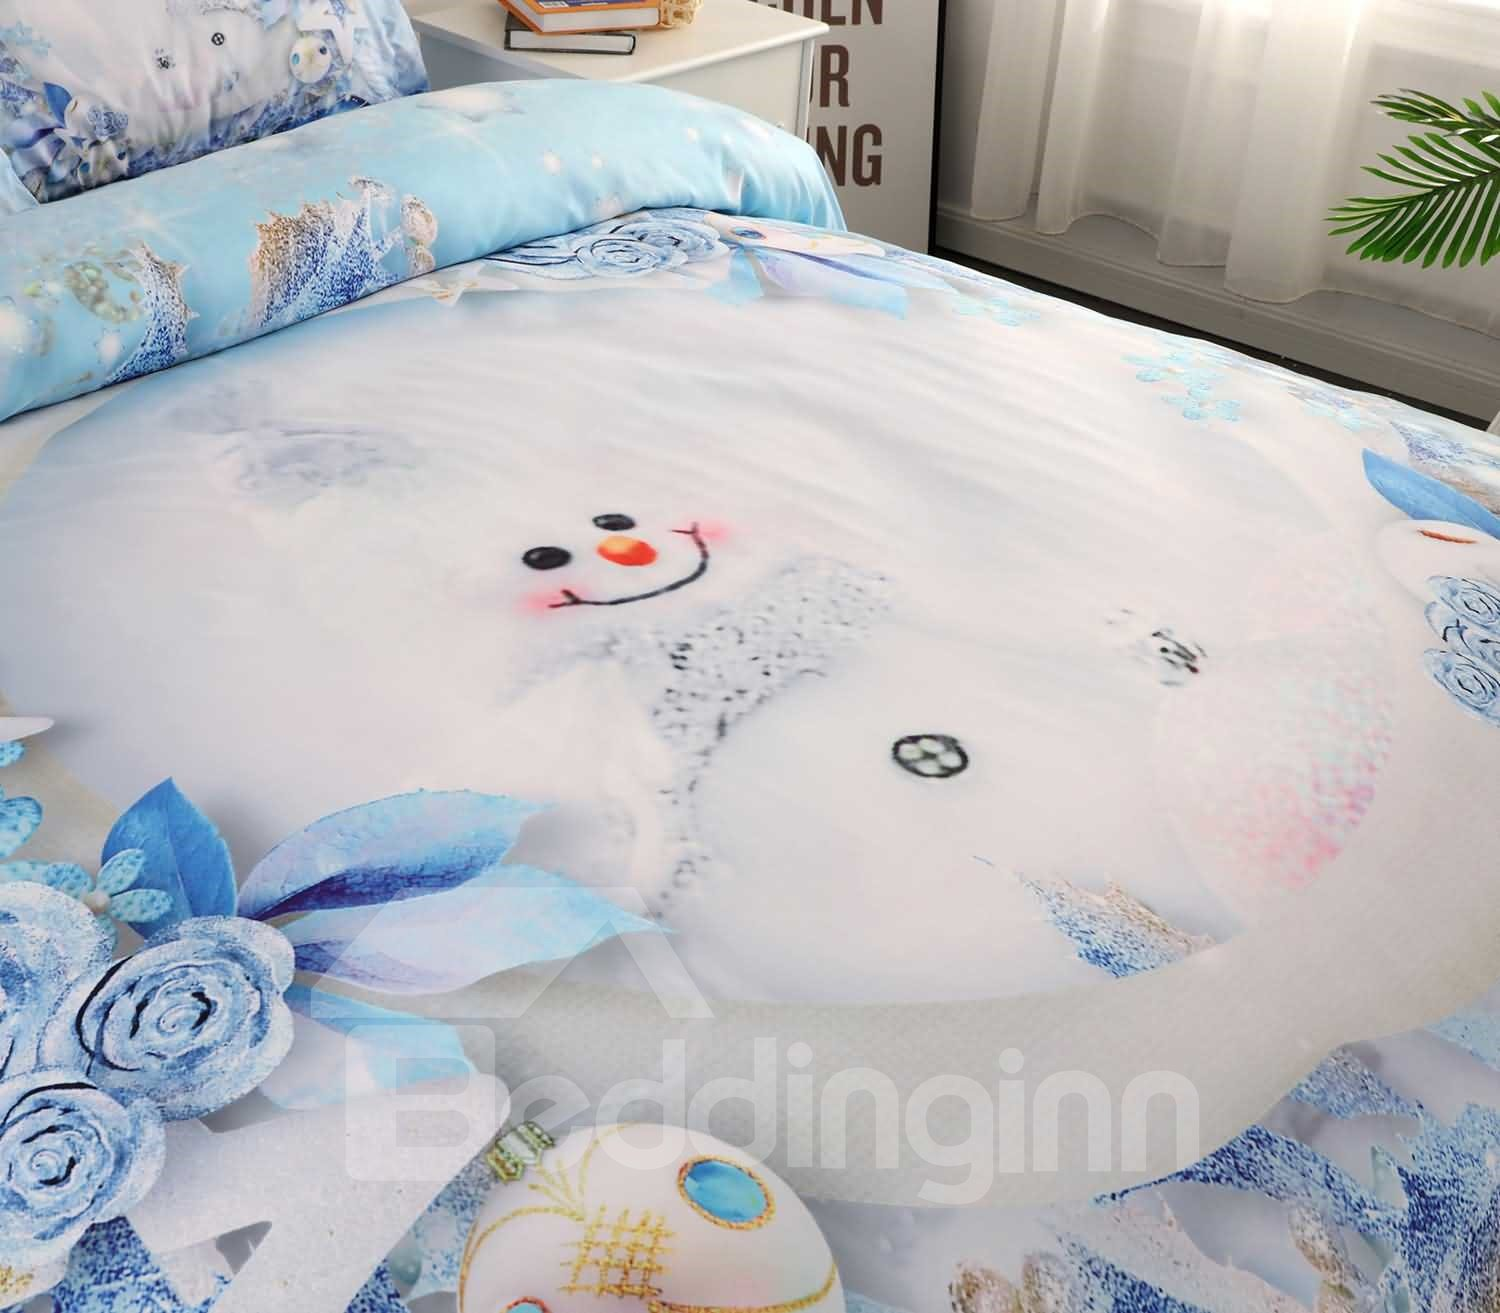 3D Snowman and Christmas Ornaments Printed Cotton 4-Piece Bedding Sets/Duvet Covers